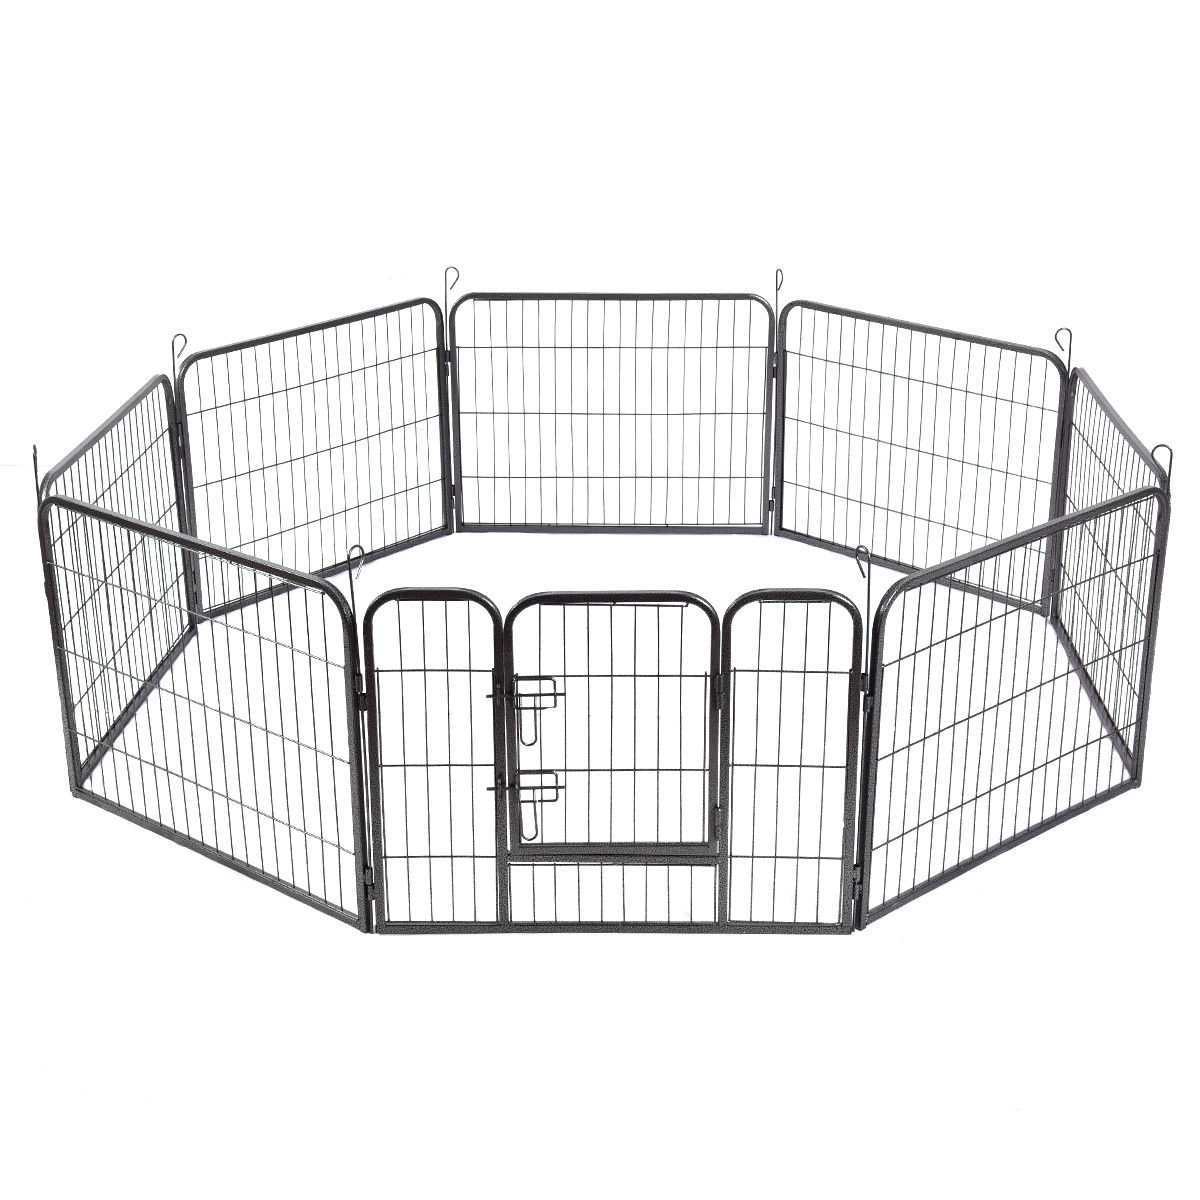 Gymax 24'' 8 Panel Pet Puppy Dog Playpen Door Exercise Kennel Fence Metal